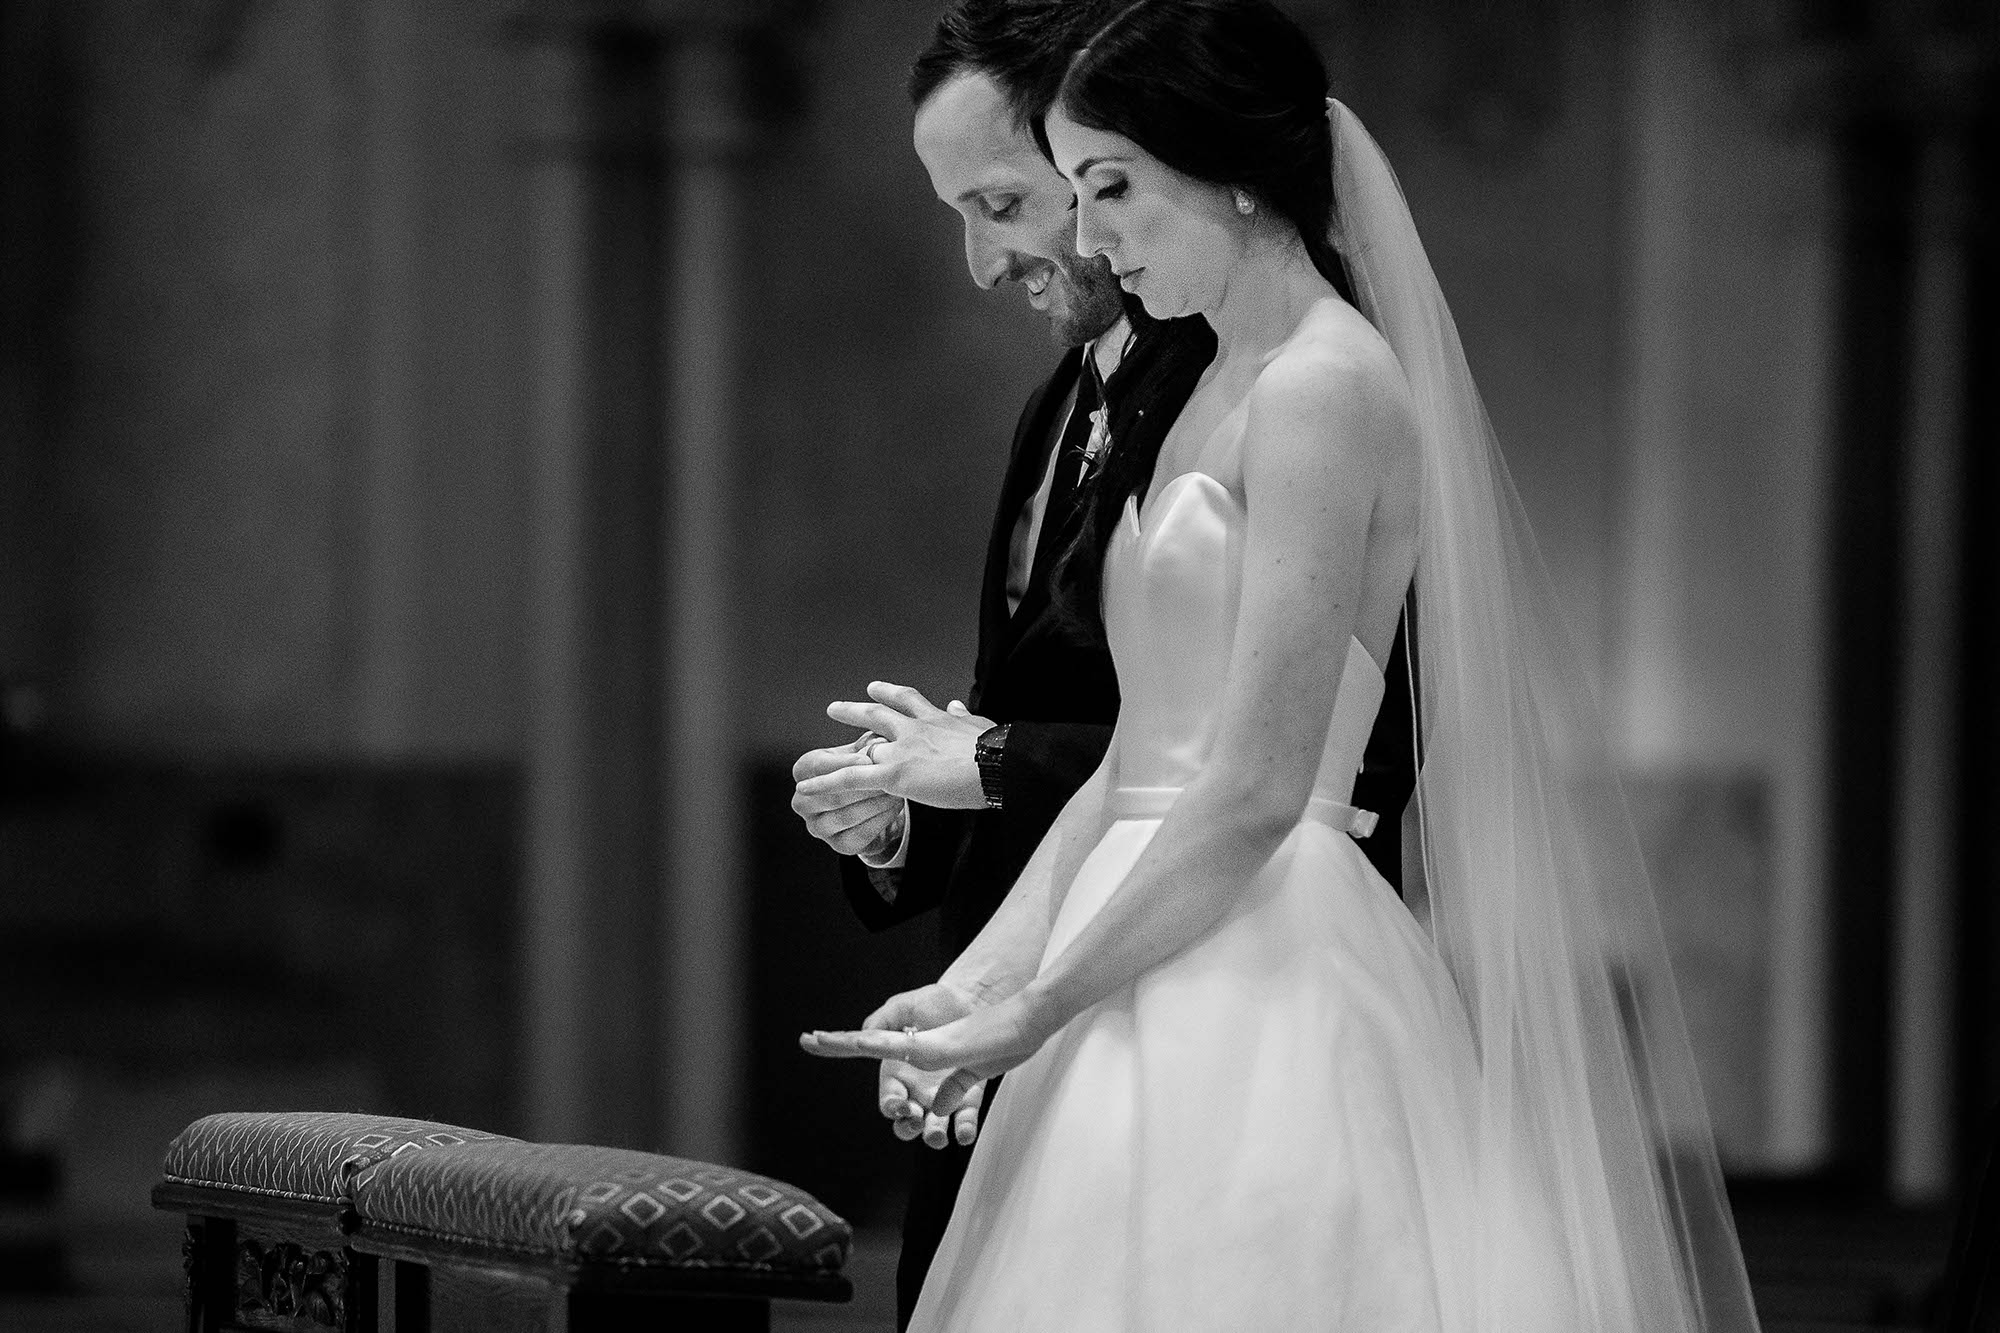 Liz and Mike both check out their brand new wedding bands during their Catholic wedding mass at St. John's Cathedral in Cleveland.